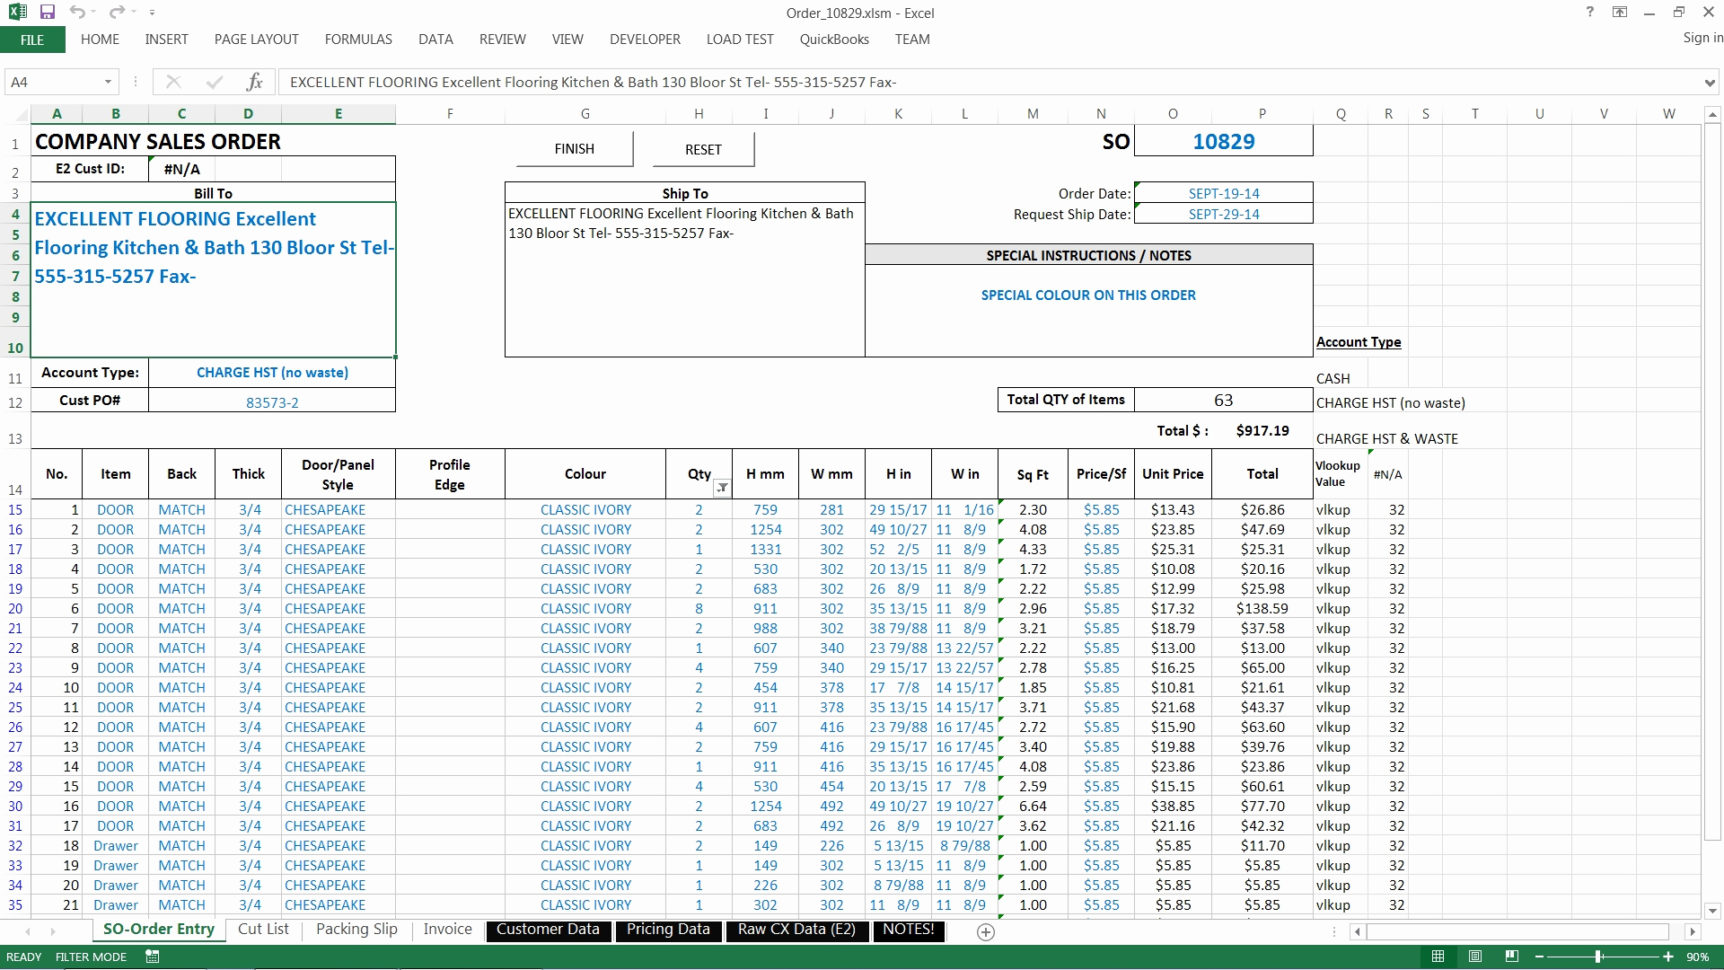 Free Applicant Tracking Spreadsheet Luxury Wineathomeit Applicant Throughout Applicant Tracking Spreadsheet Download Free